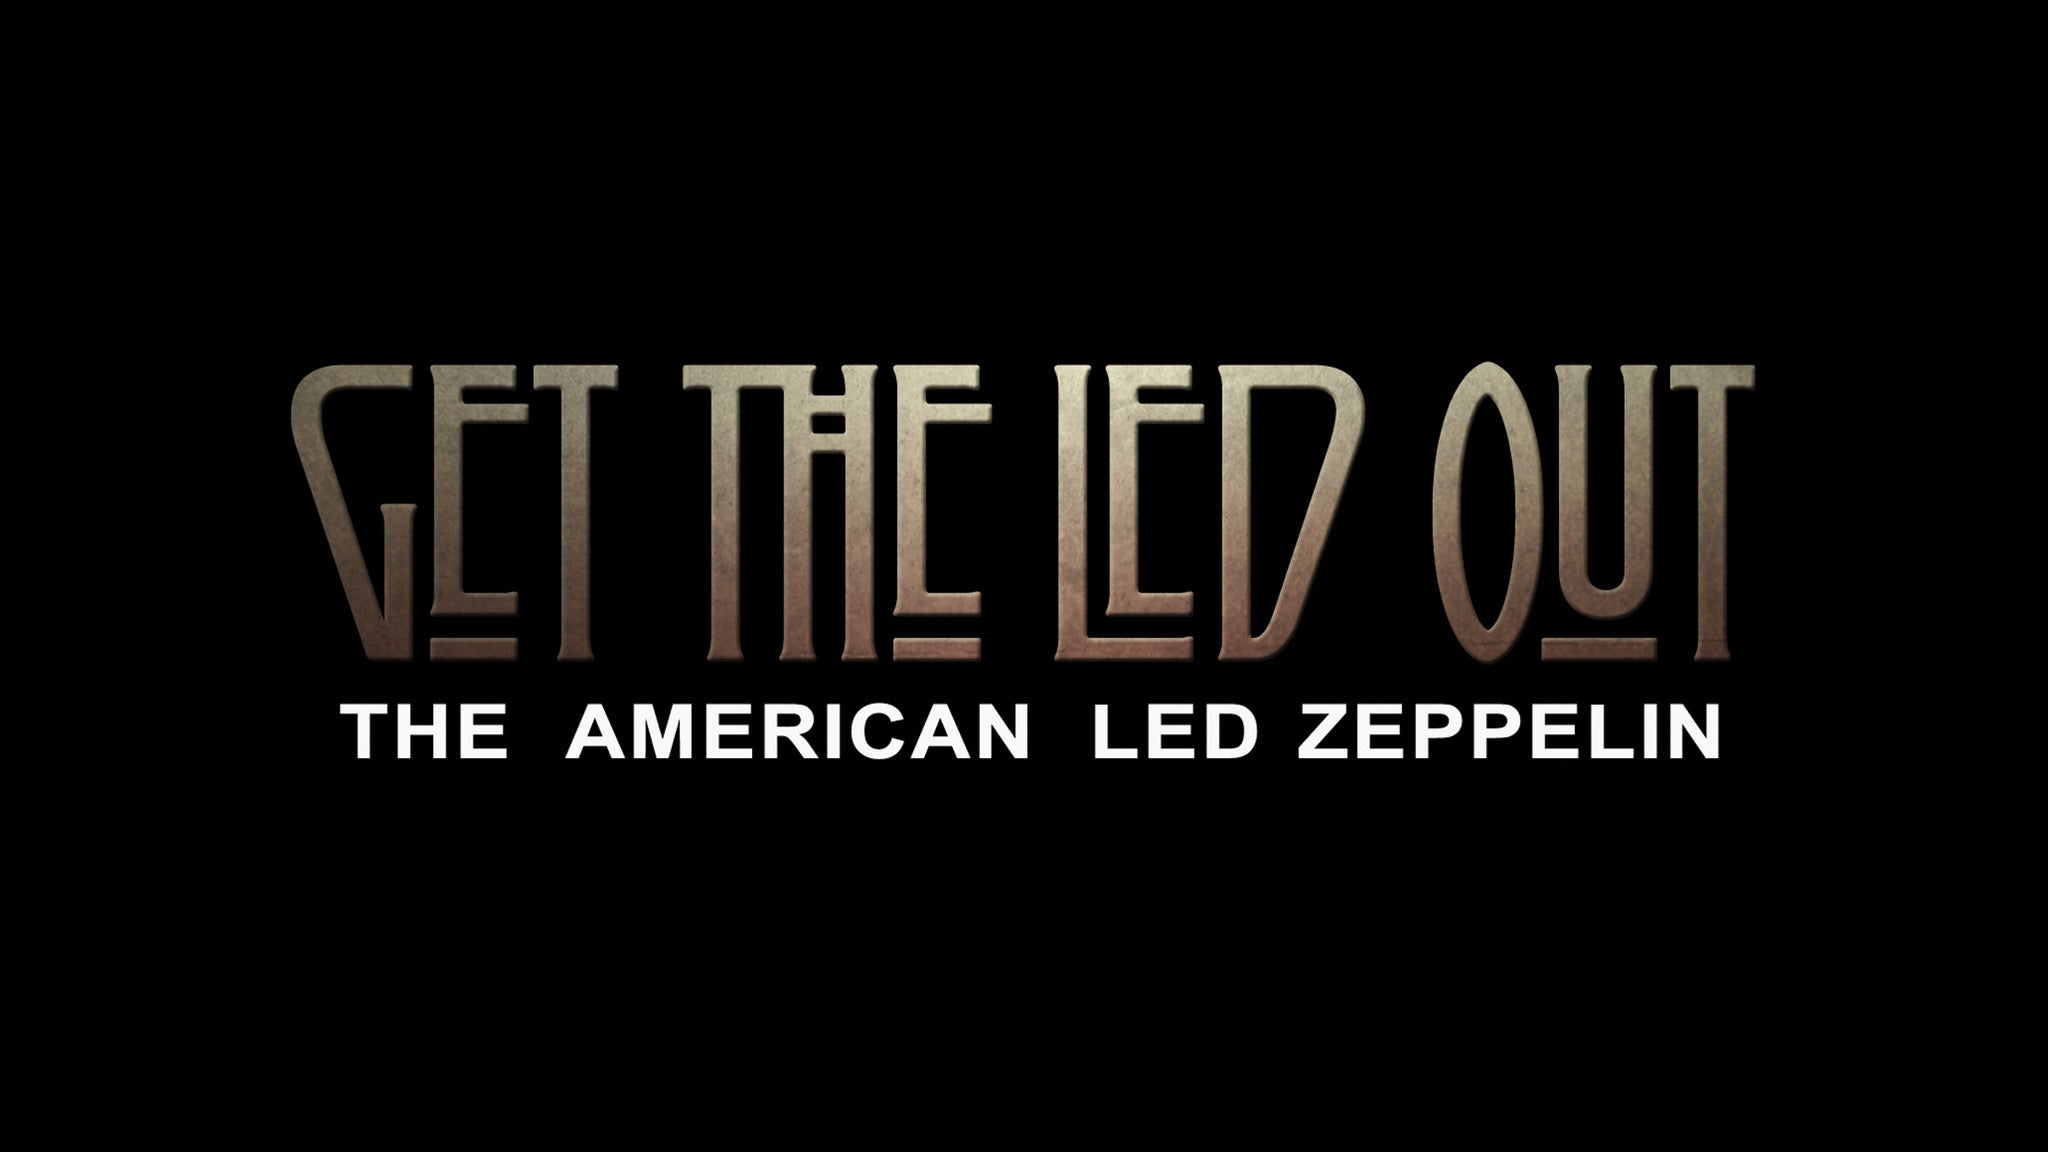 Get the Led Out at The UC Theatre - Berkeley, CA 94704